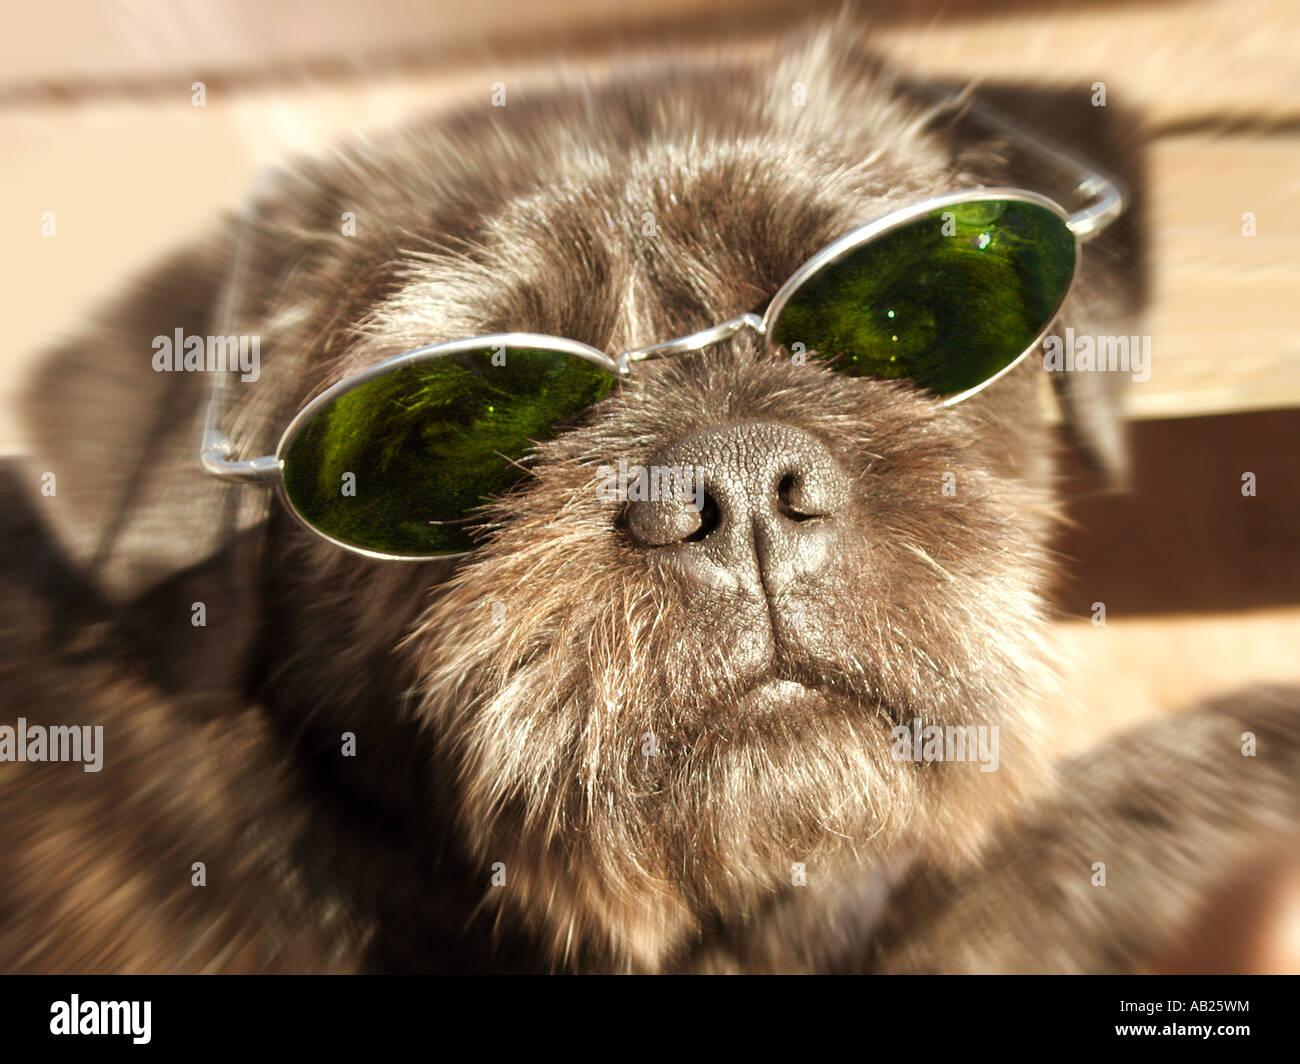 dog with sunglasses Hund mit Sonnenbrille - Stock Image